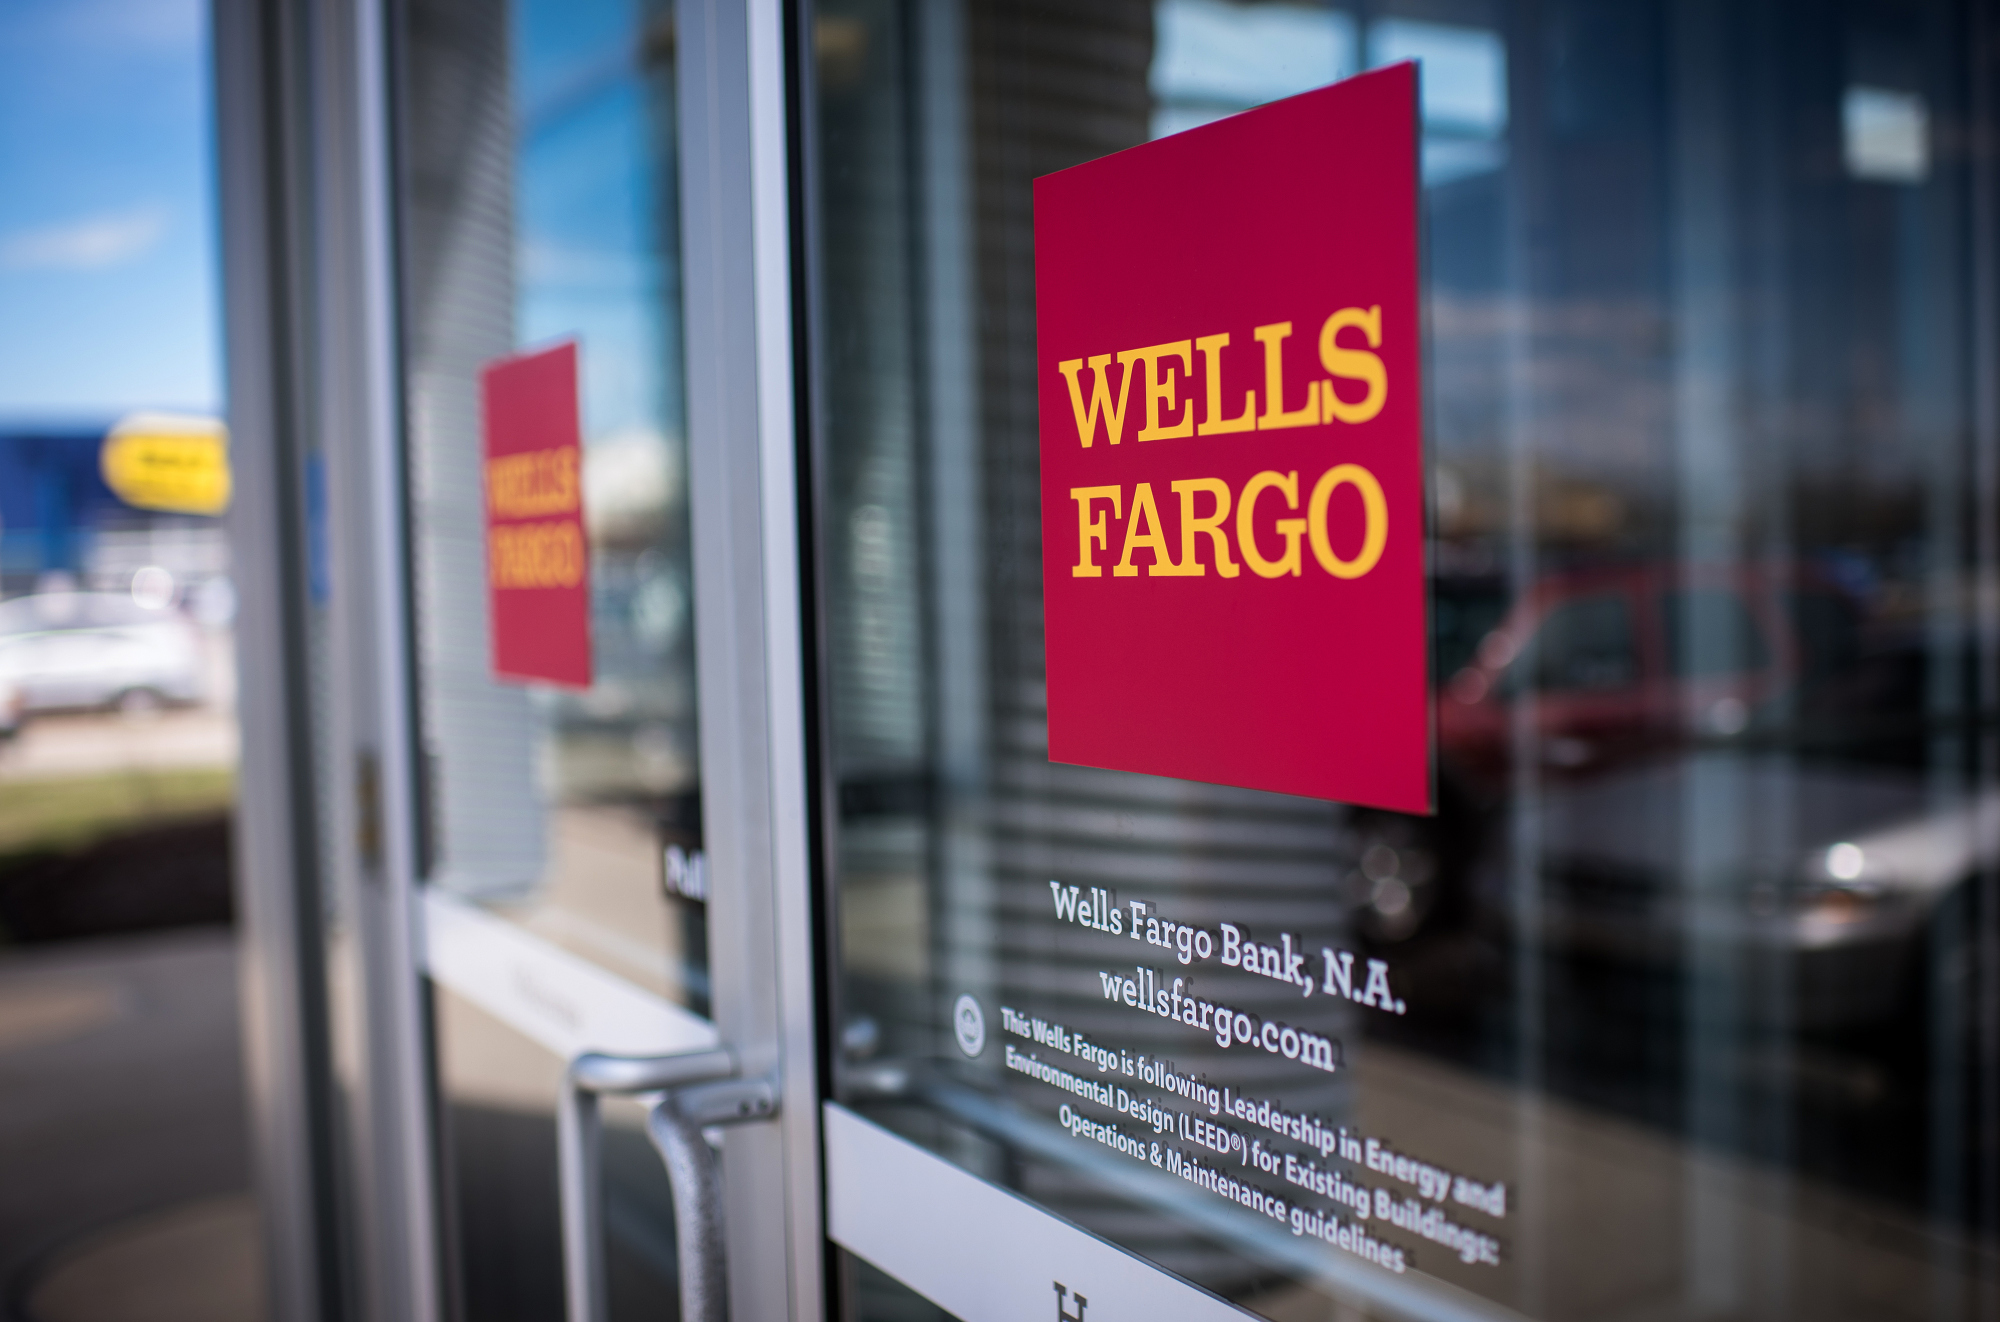 Wells Fargo's Wealth-Management Business Faces SEC Probe